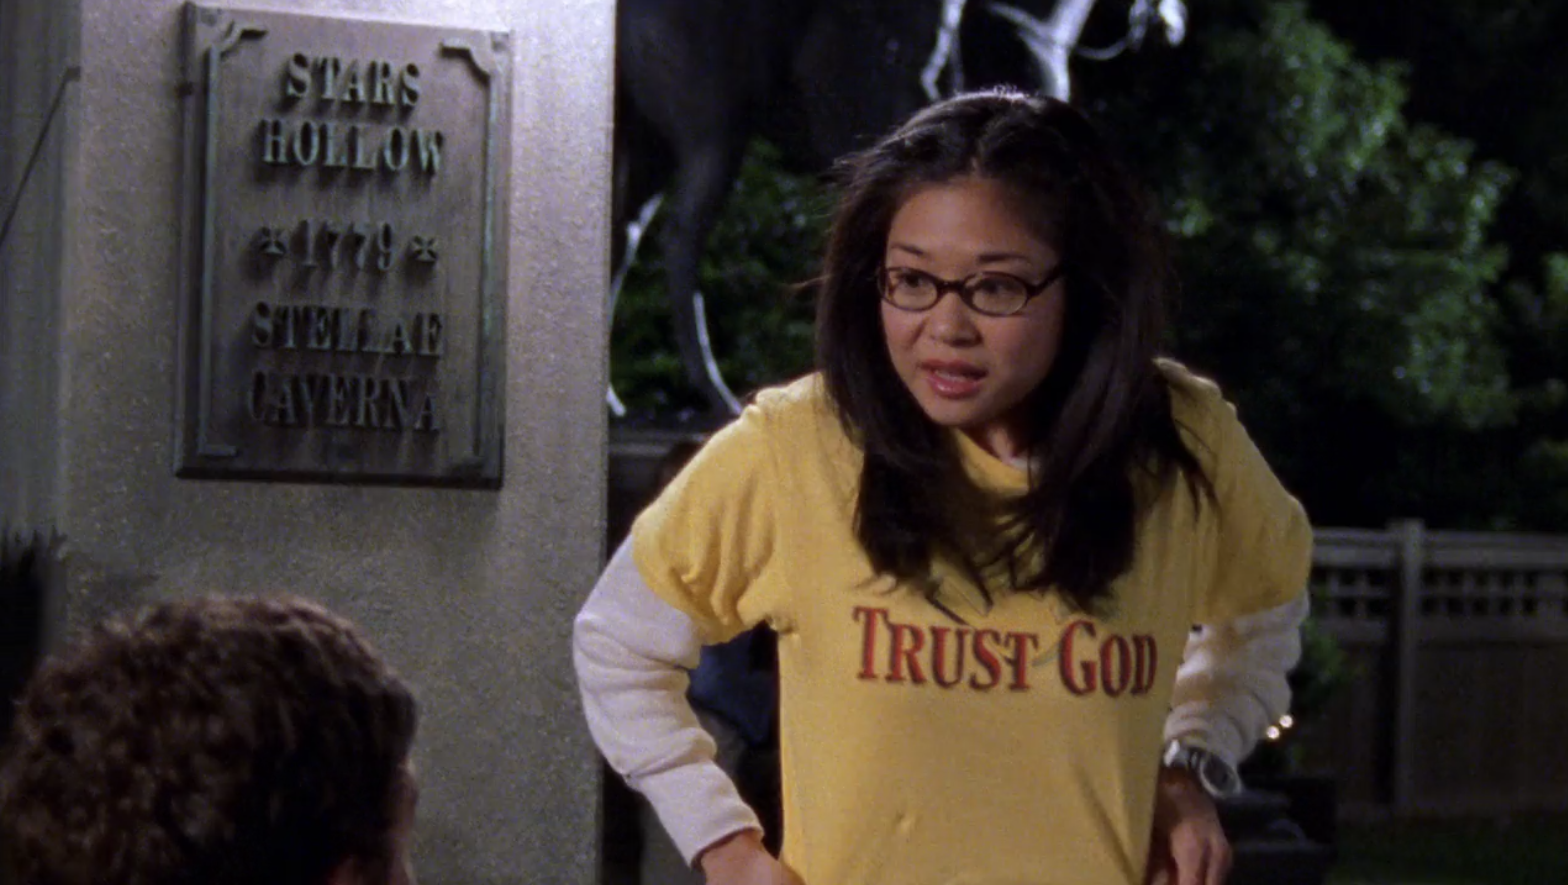 Lanes-Trust-God-Shirt-Application-Anxiety-Gilmore-Girls-1